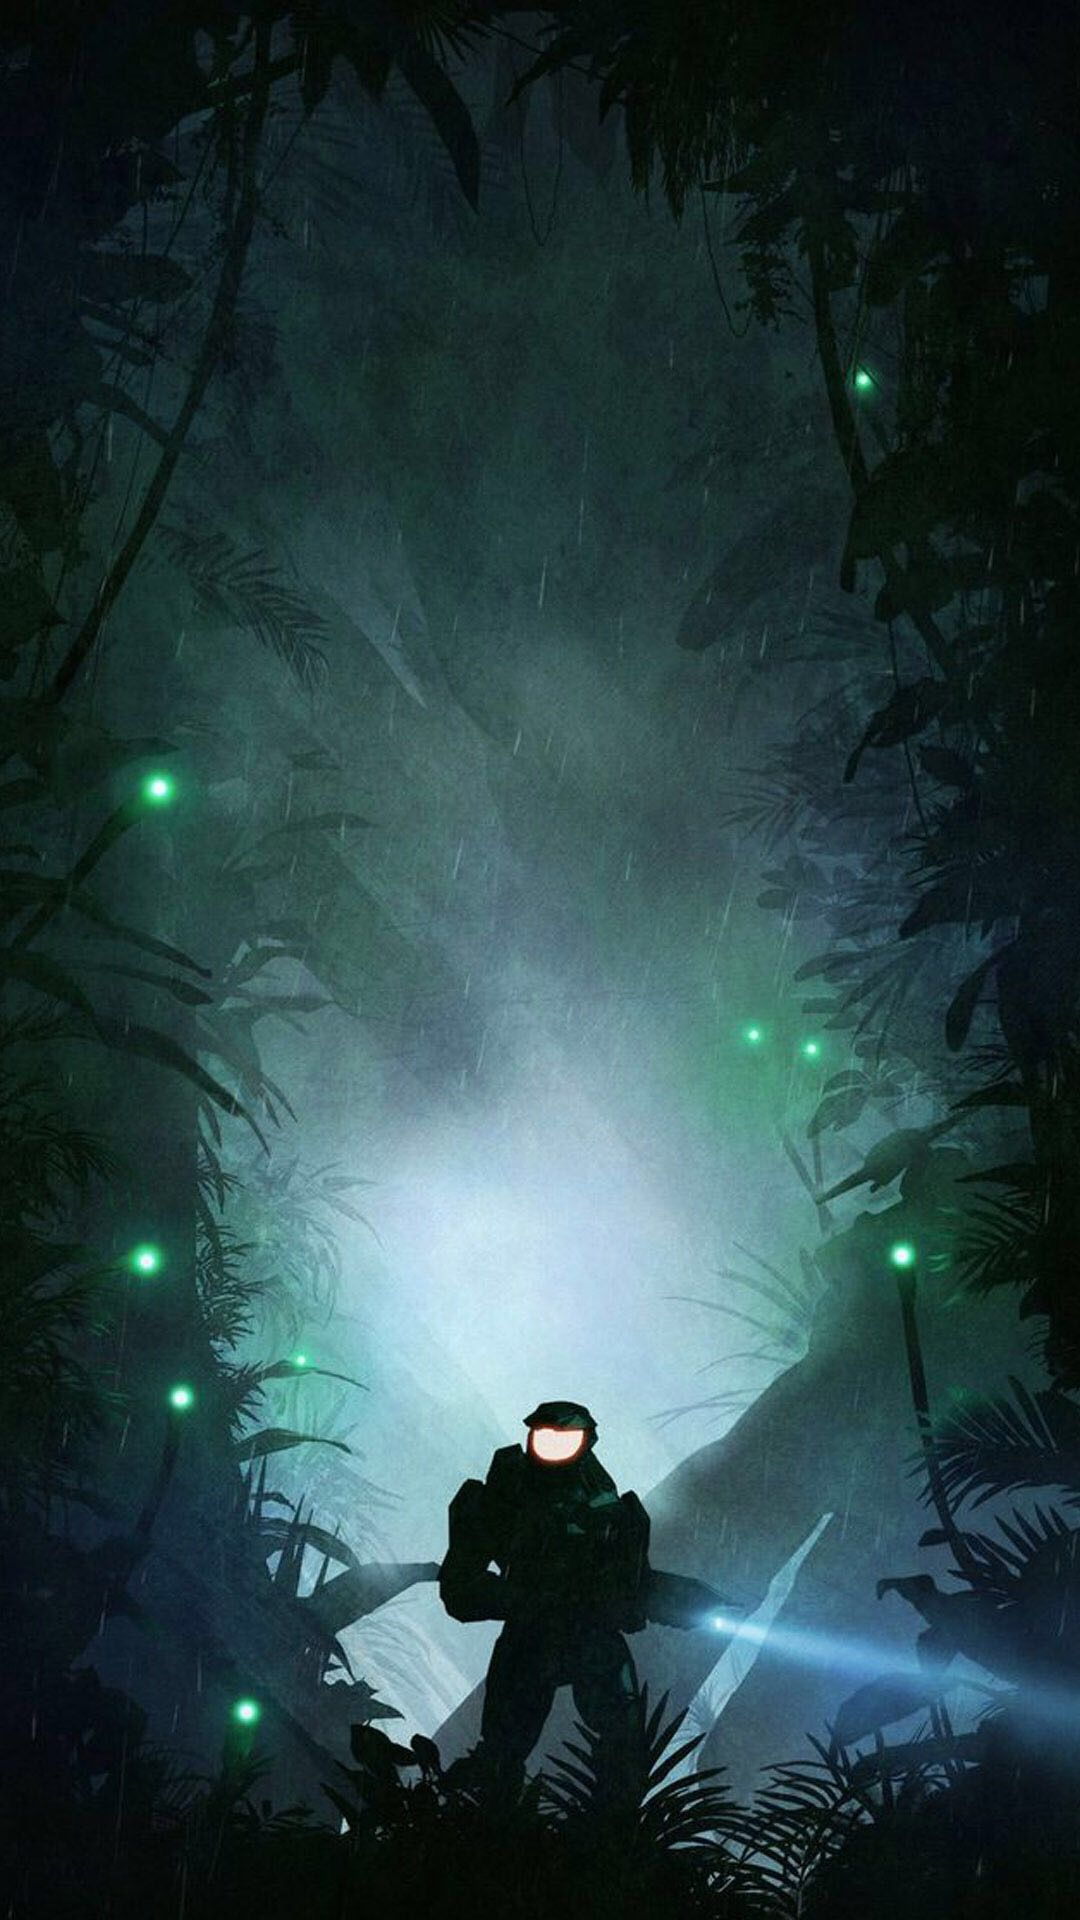 Pin by My youbia on Halo Halo game, Halo video game